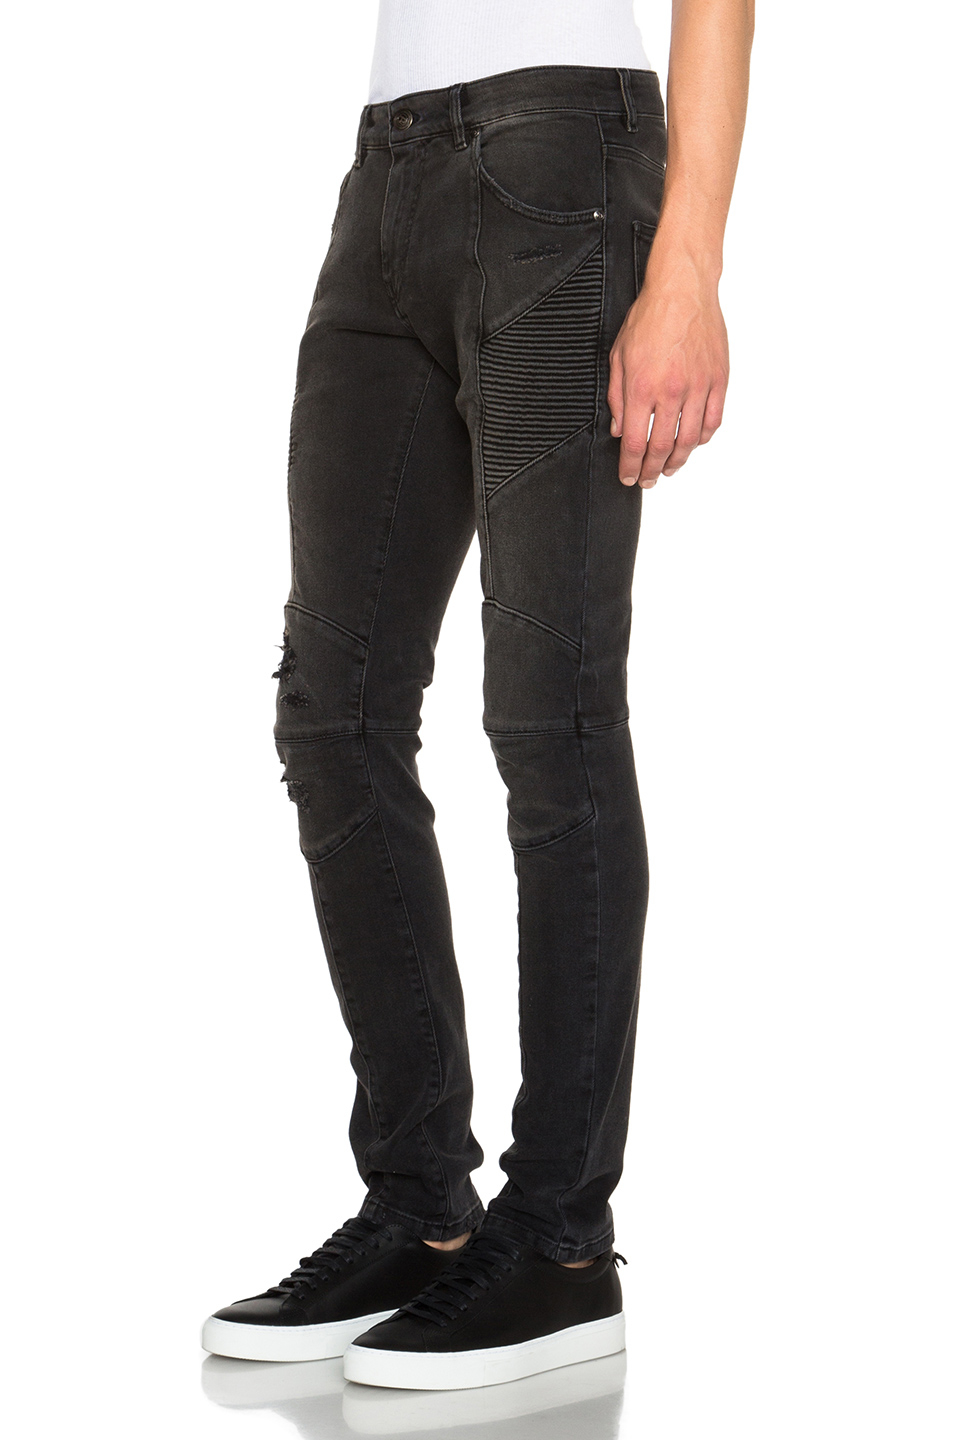 Shop the full range of men's Balmain jeans and denim from the latest collection, only on the official website distrib-u5b2od.ga Olivier Rousteing wears his signature black skinny jeans daily—so you can be sure that his men's designer jeans are designed to be in a class by themselves. Whether biker, skinny or ultra-skinny, these indigo, black.